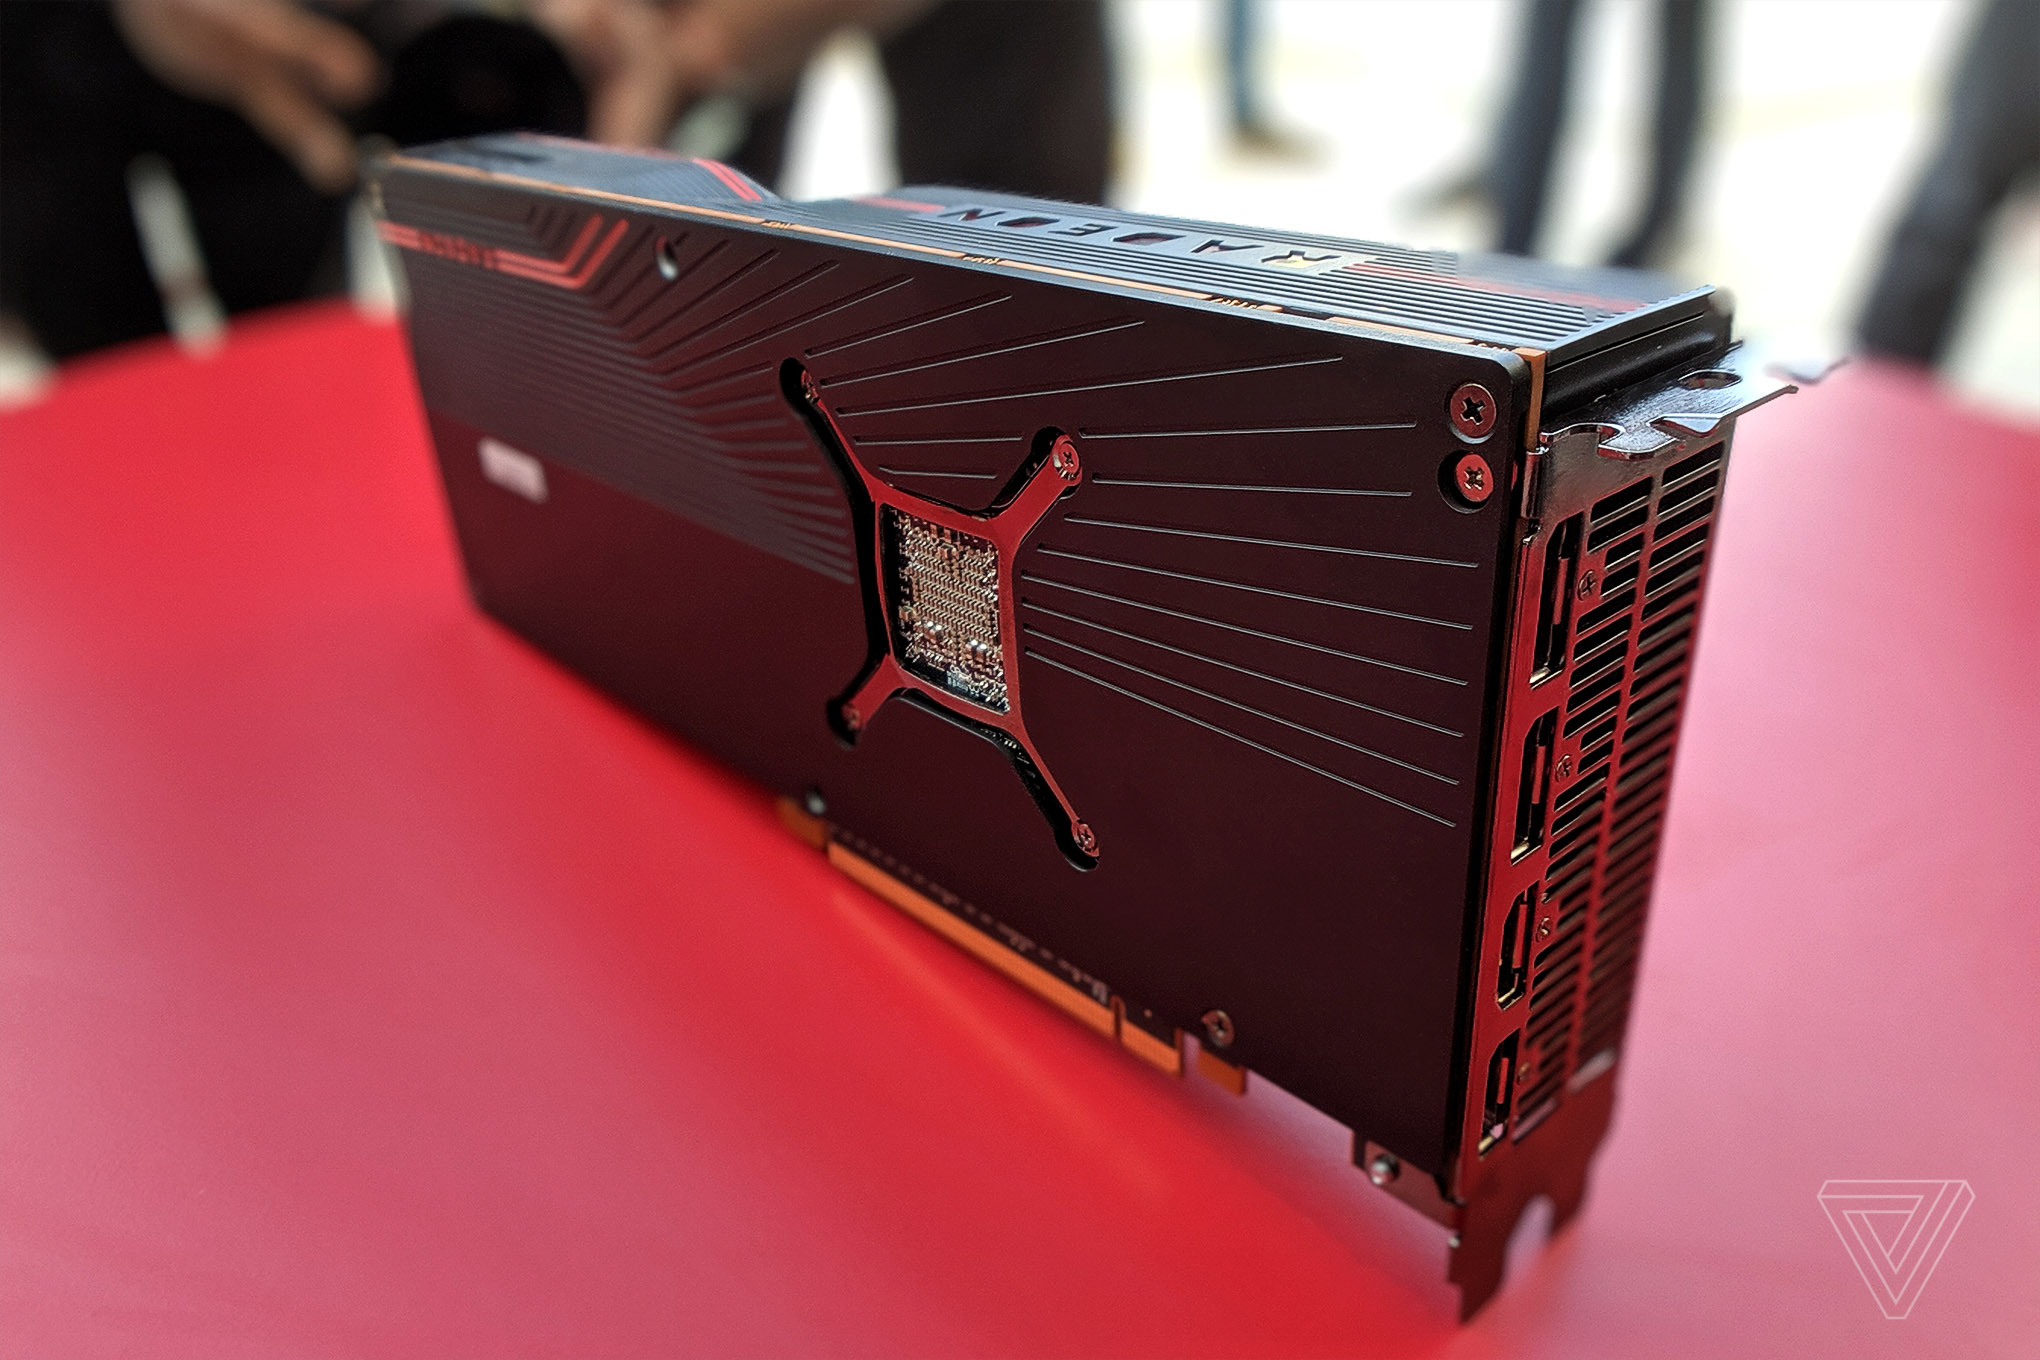 AMD's Radeon 5700 XT wants to put a dent in the world like the dent